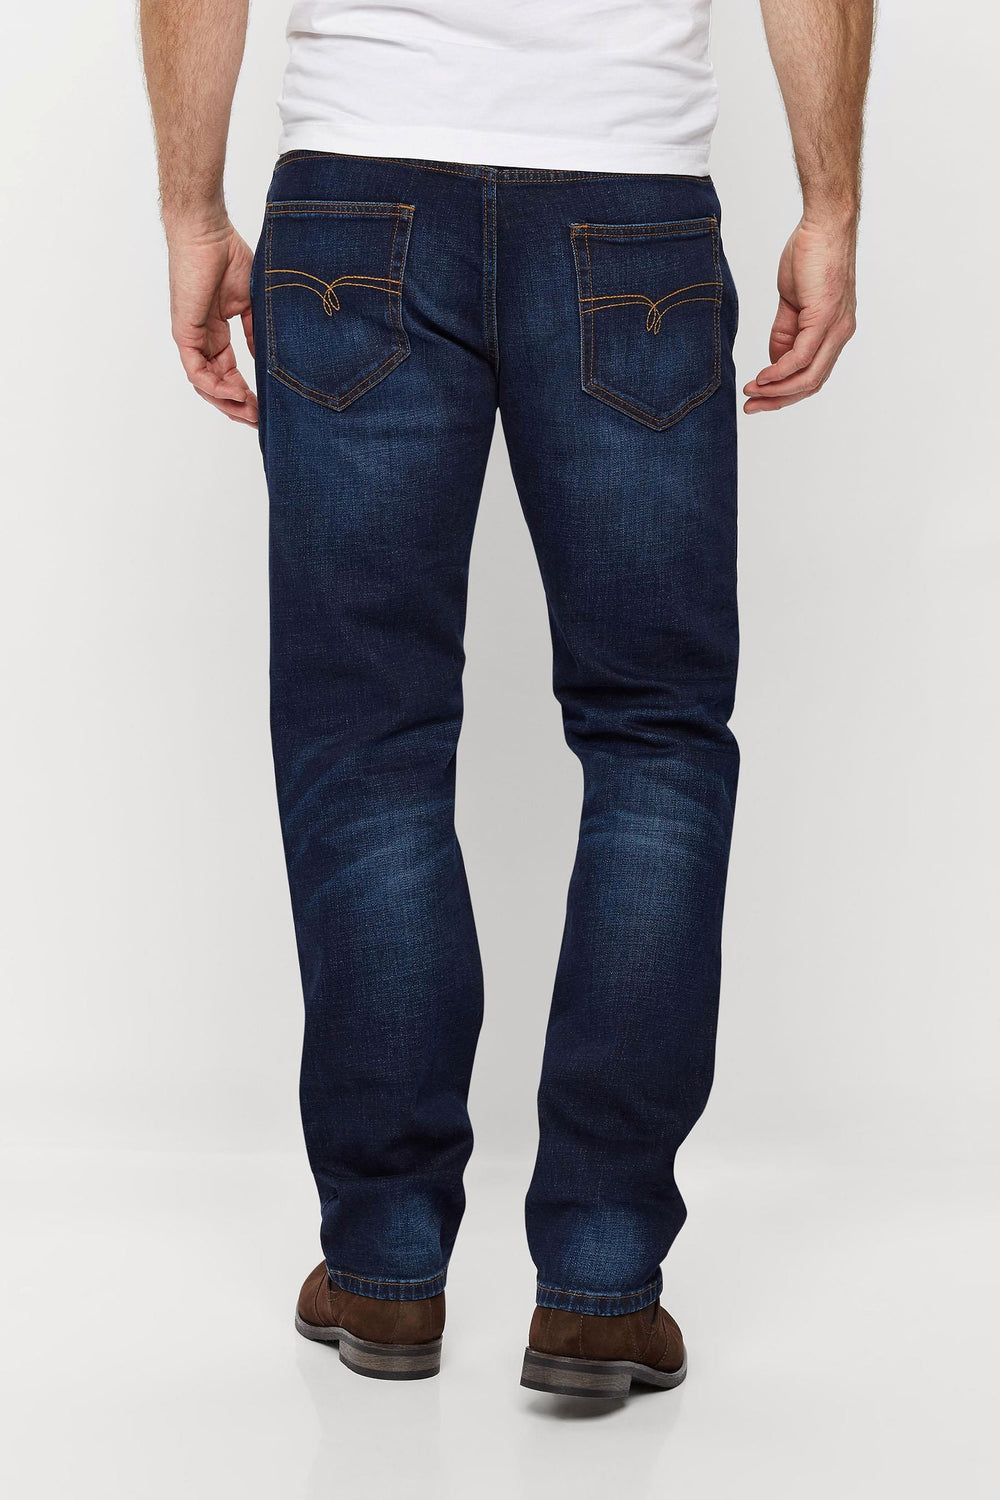 Jeans for Boys. Abercrombie Kids' boys jeans are simply the best. With the most up-to-date styles and the perfect fits, we have everything he's looking for a new favorite pair of jeans. We have everything from the more relaxed classic jean to the ultra slim super skinny jean.